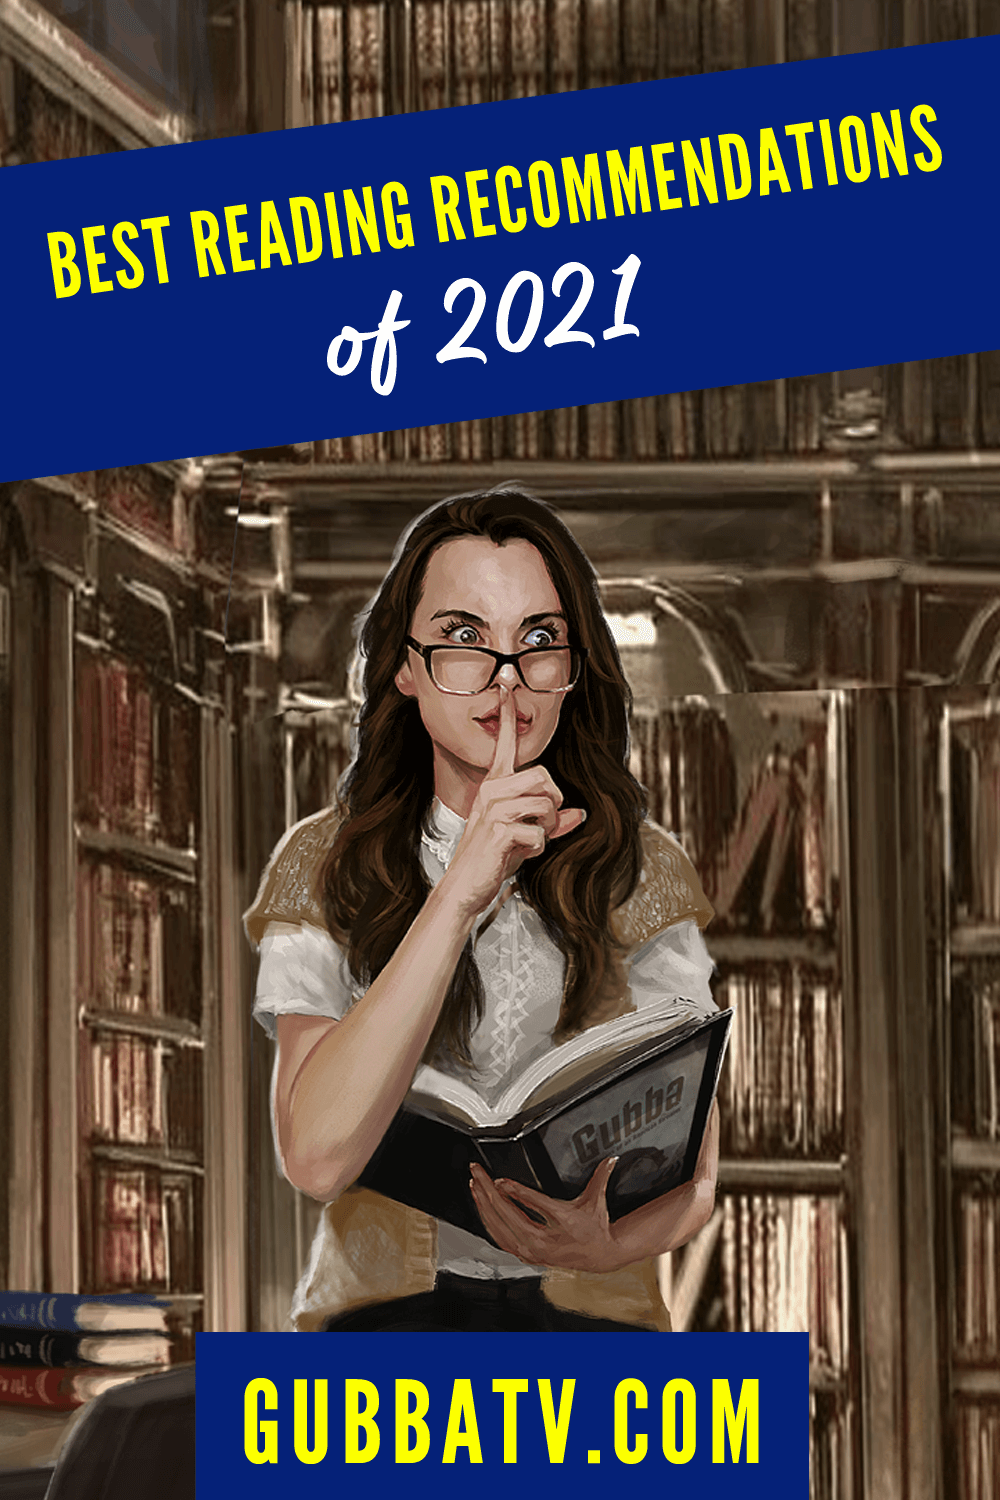 Best Reading Recommendations of 2021